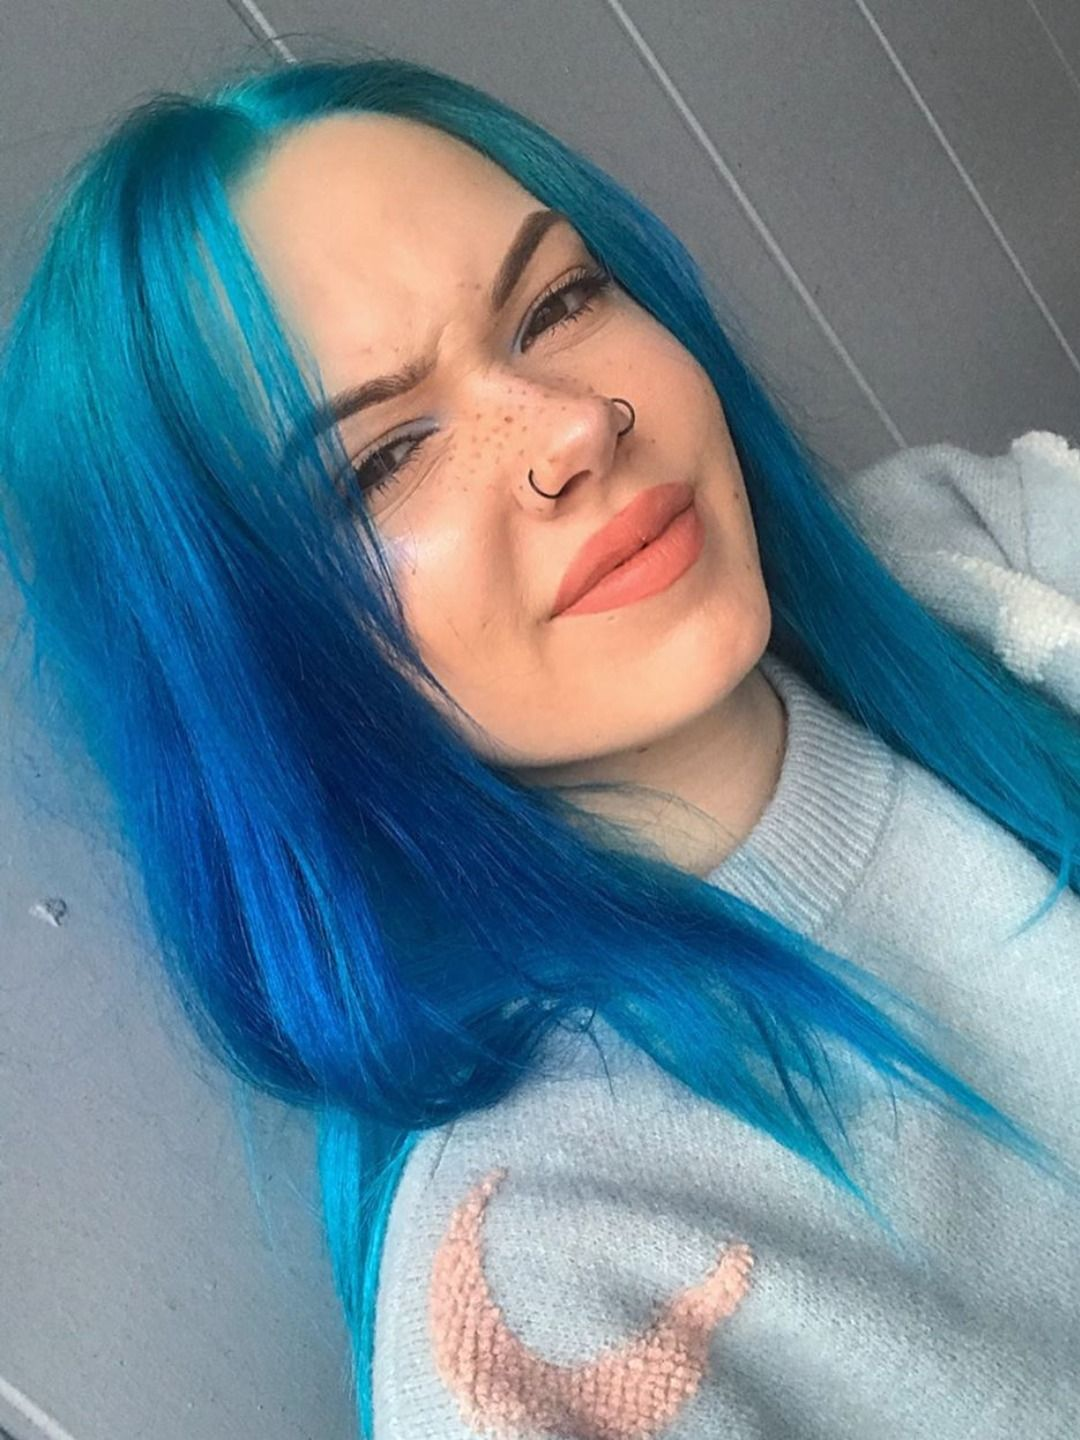 I Died The Front Two Pieces Of My Hair Blue Lol In 2020 Blue Hair My Hair Hair